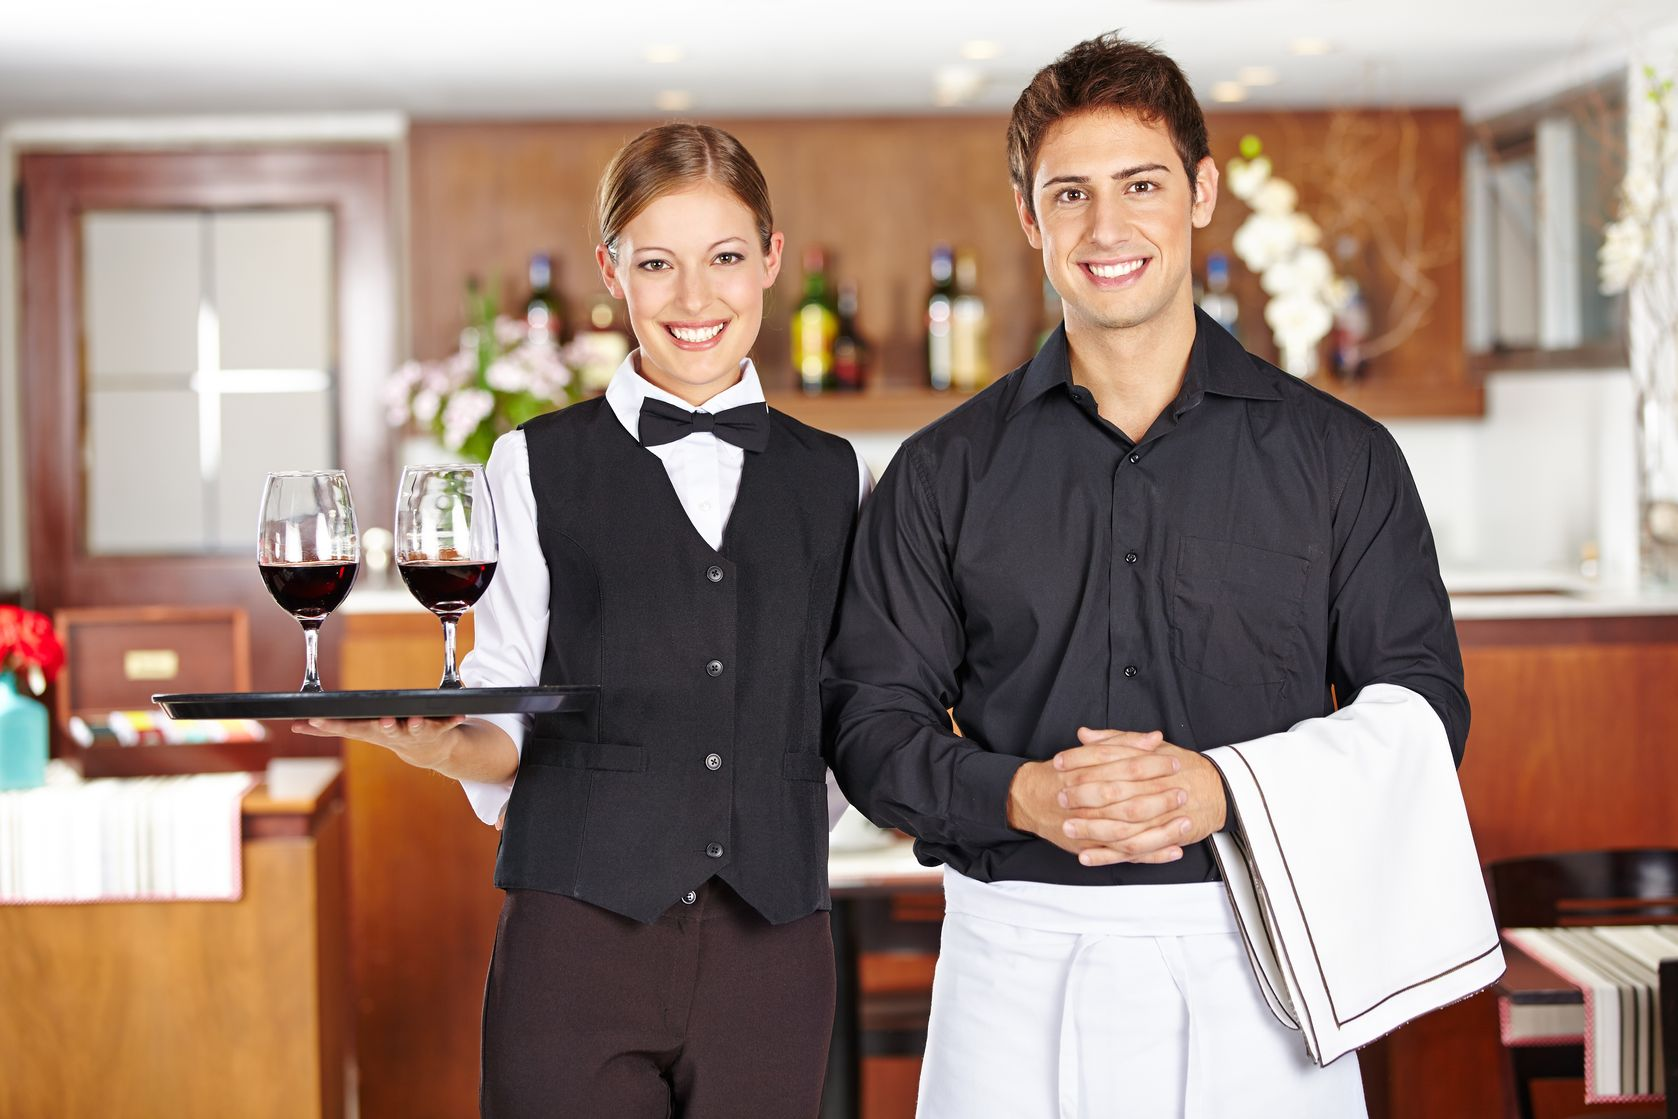 Hospitality and Catering Business for sale in Port Macquarie